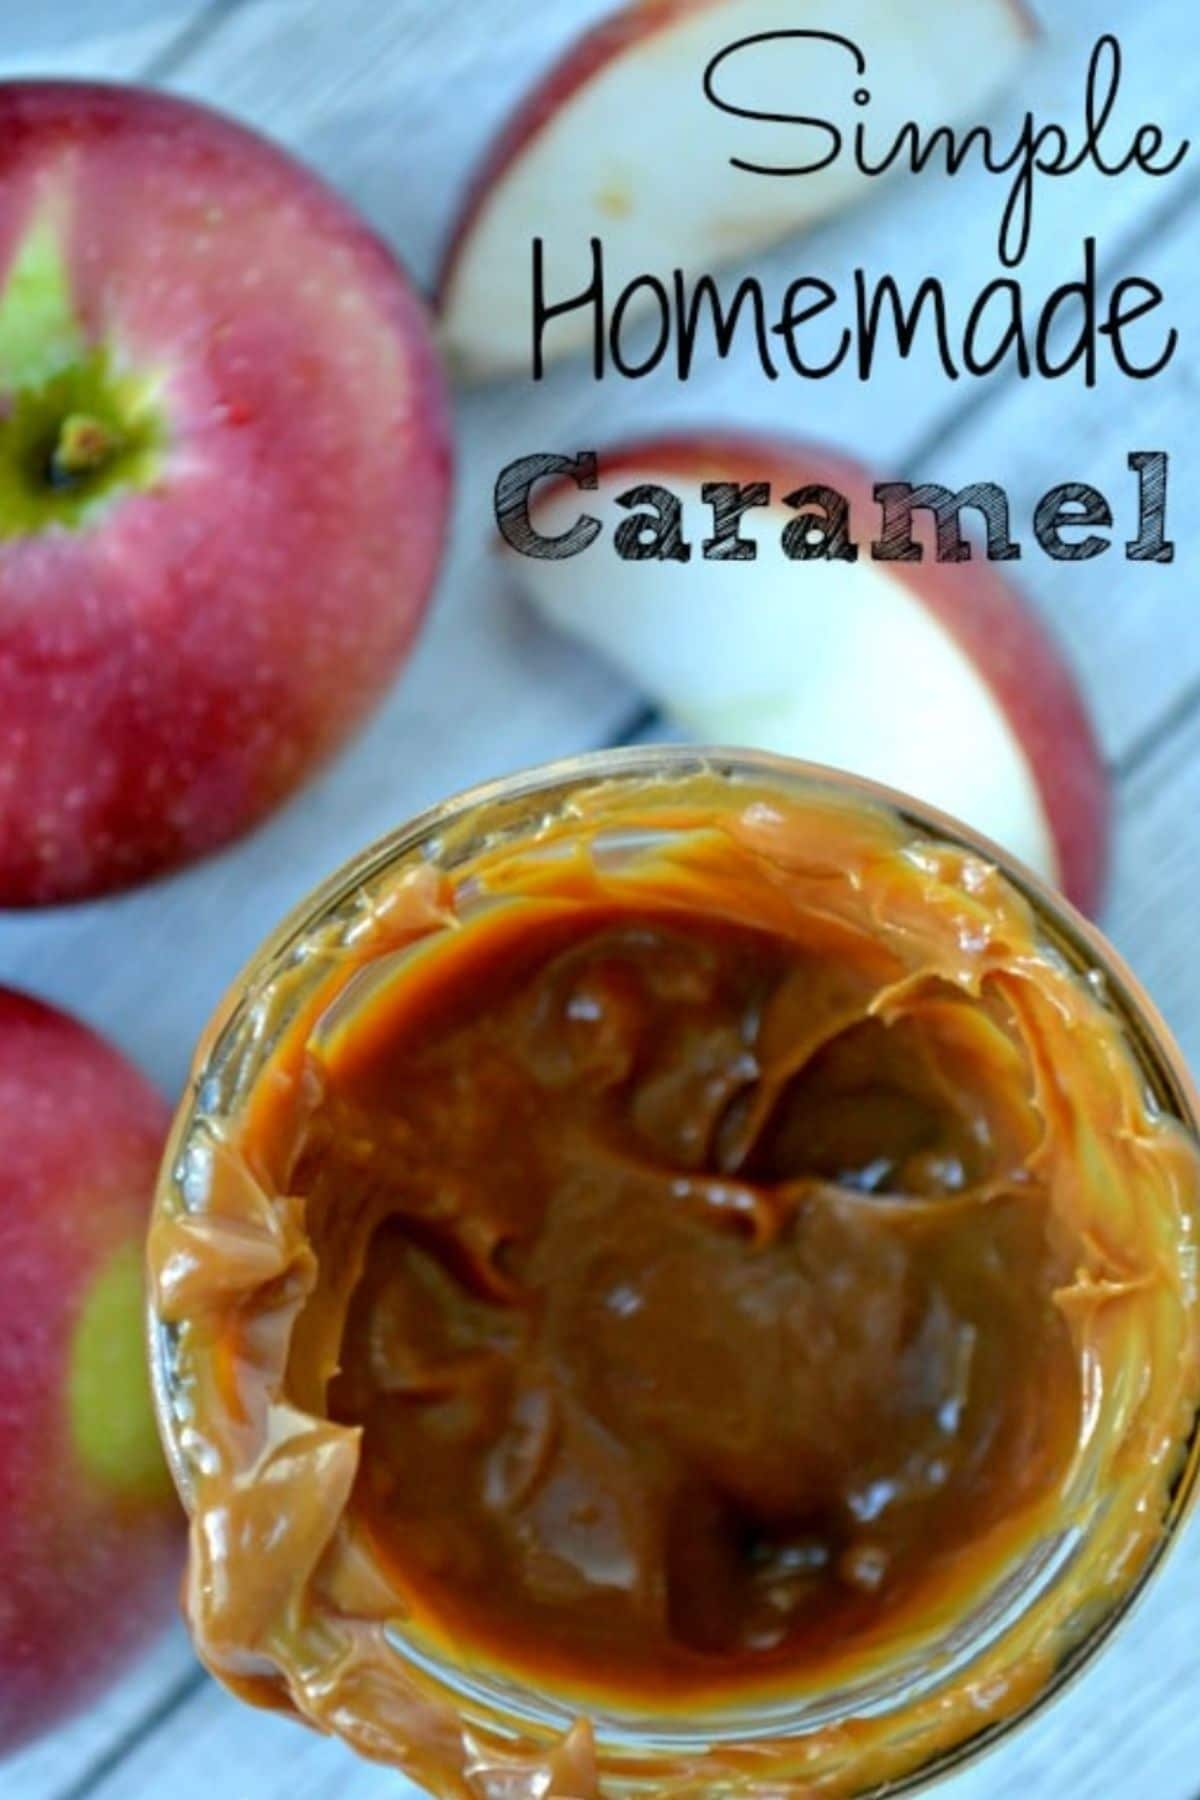 Homemade caramel sauce in a jar surrounded by apples